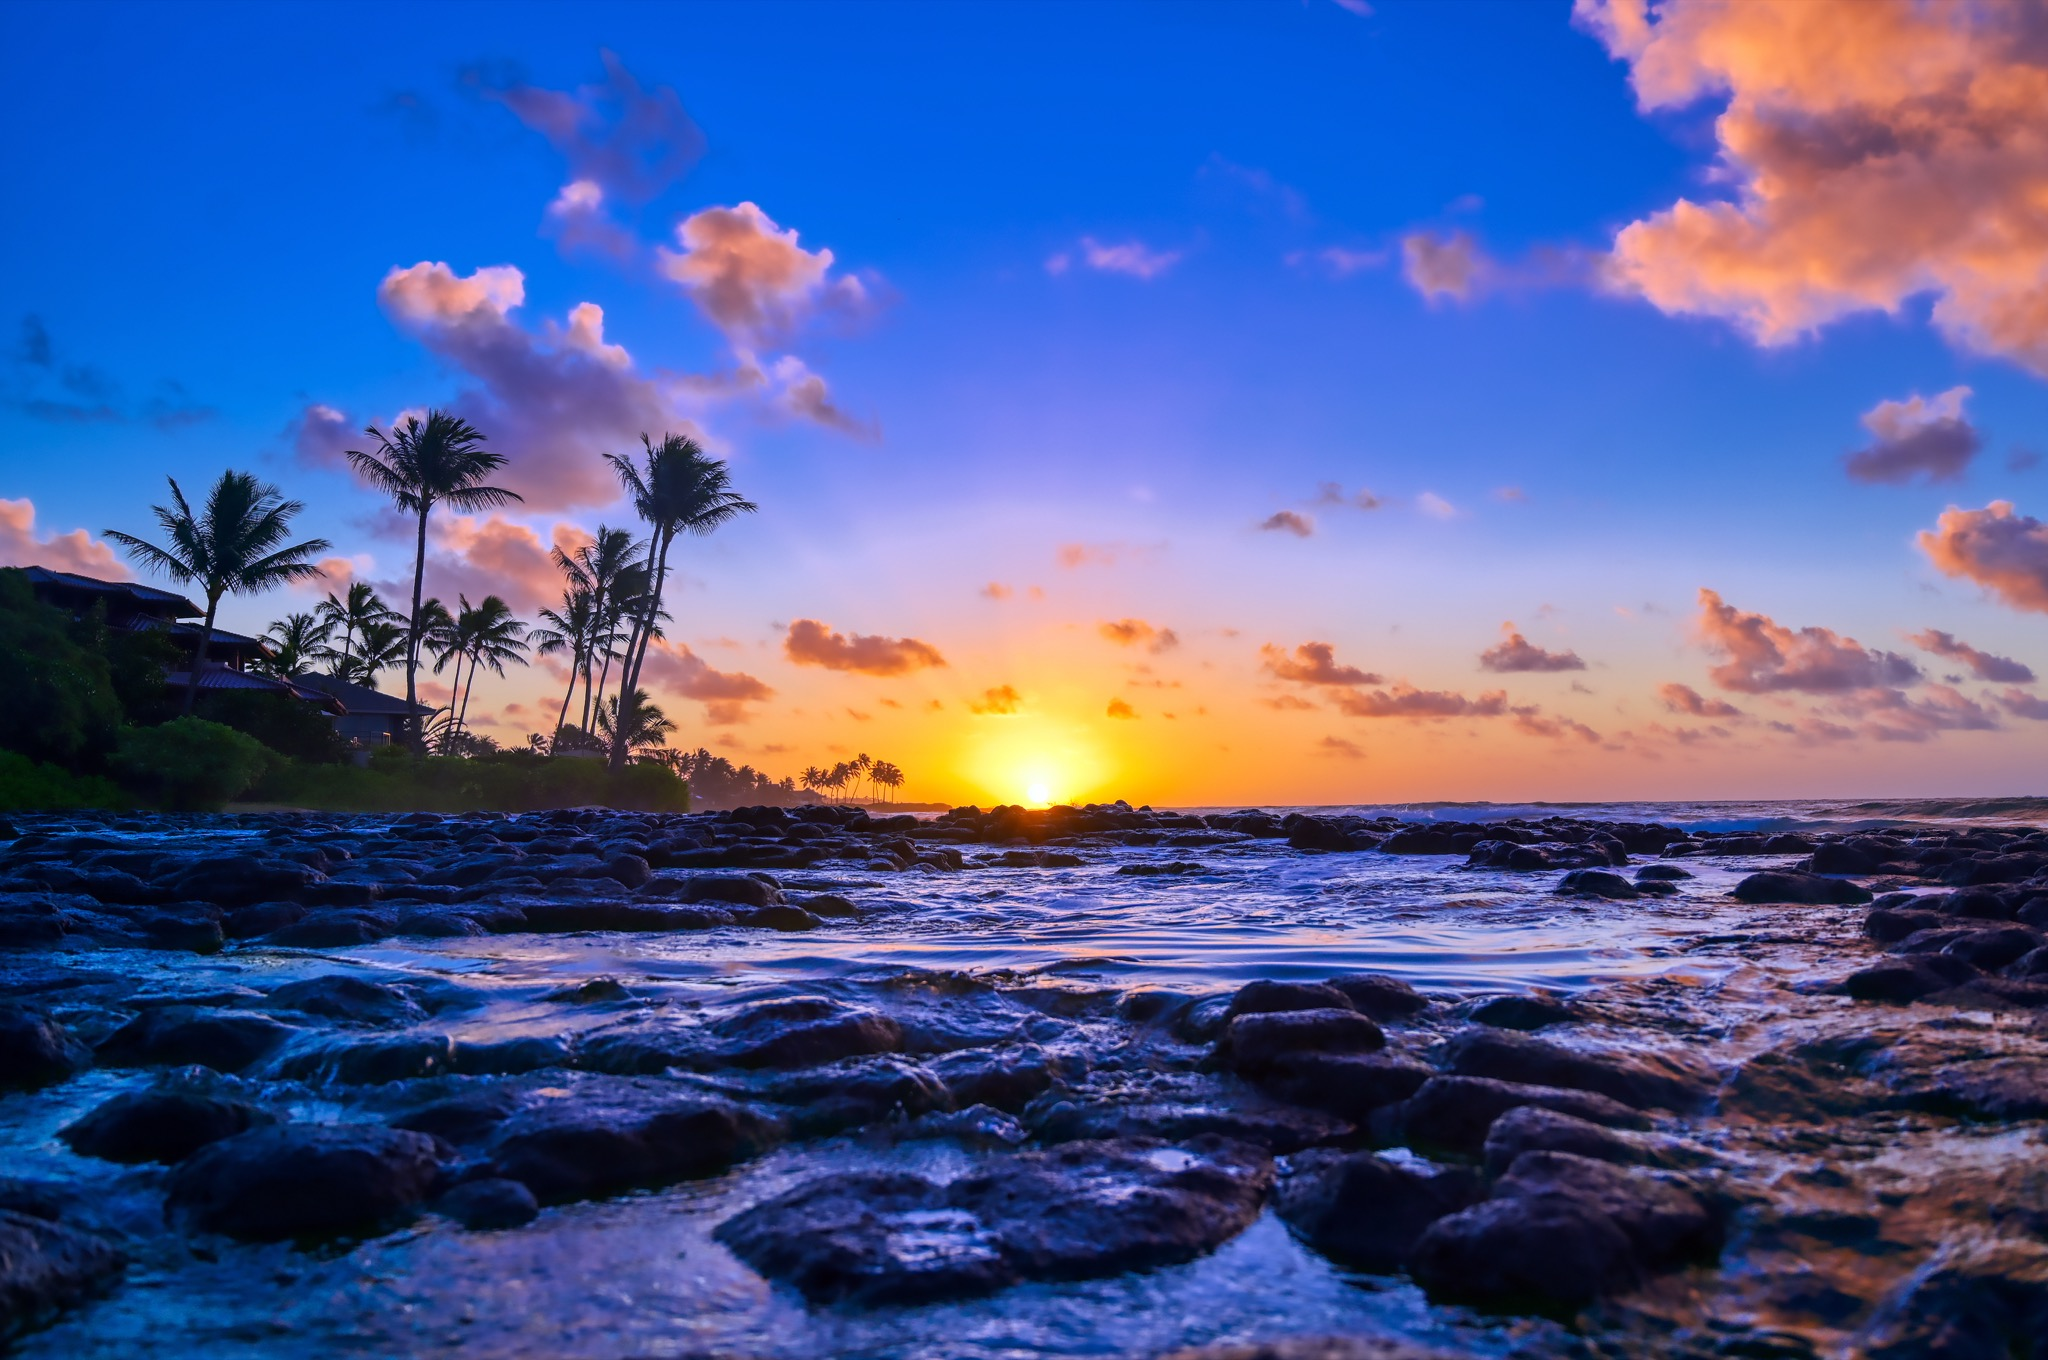 Hawaii Governor Asks Tourists To Stay Away For 30 Days